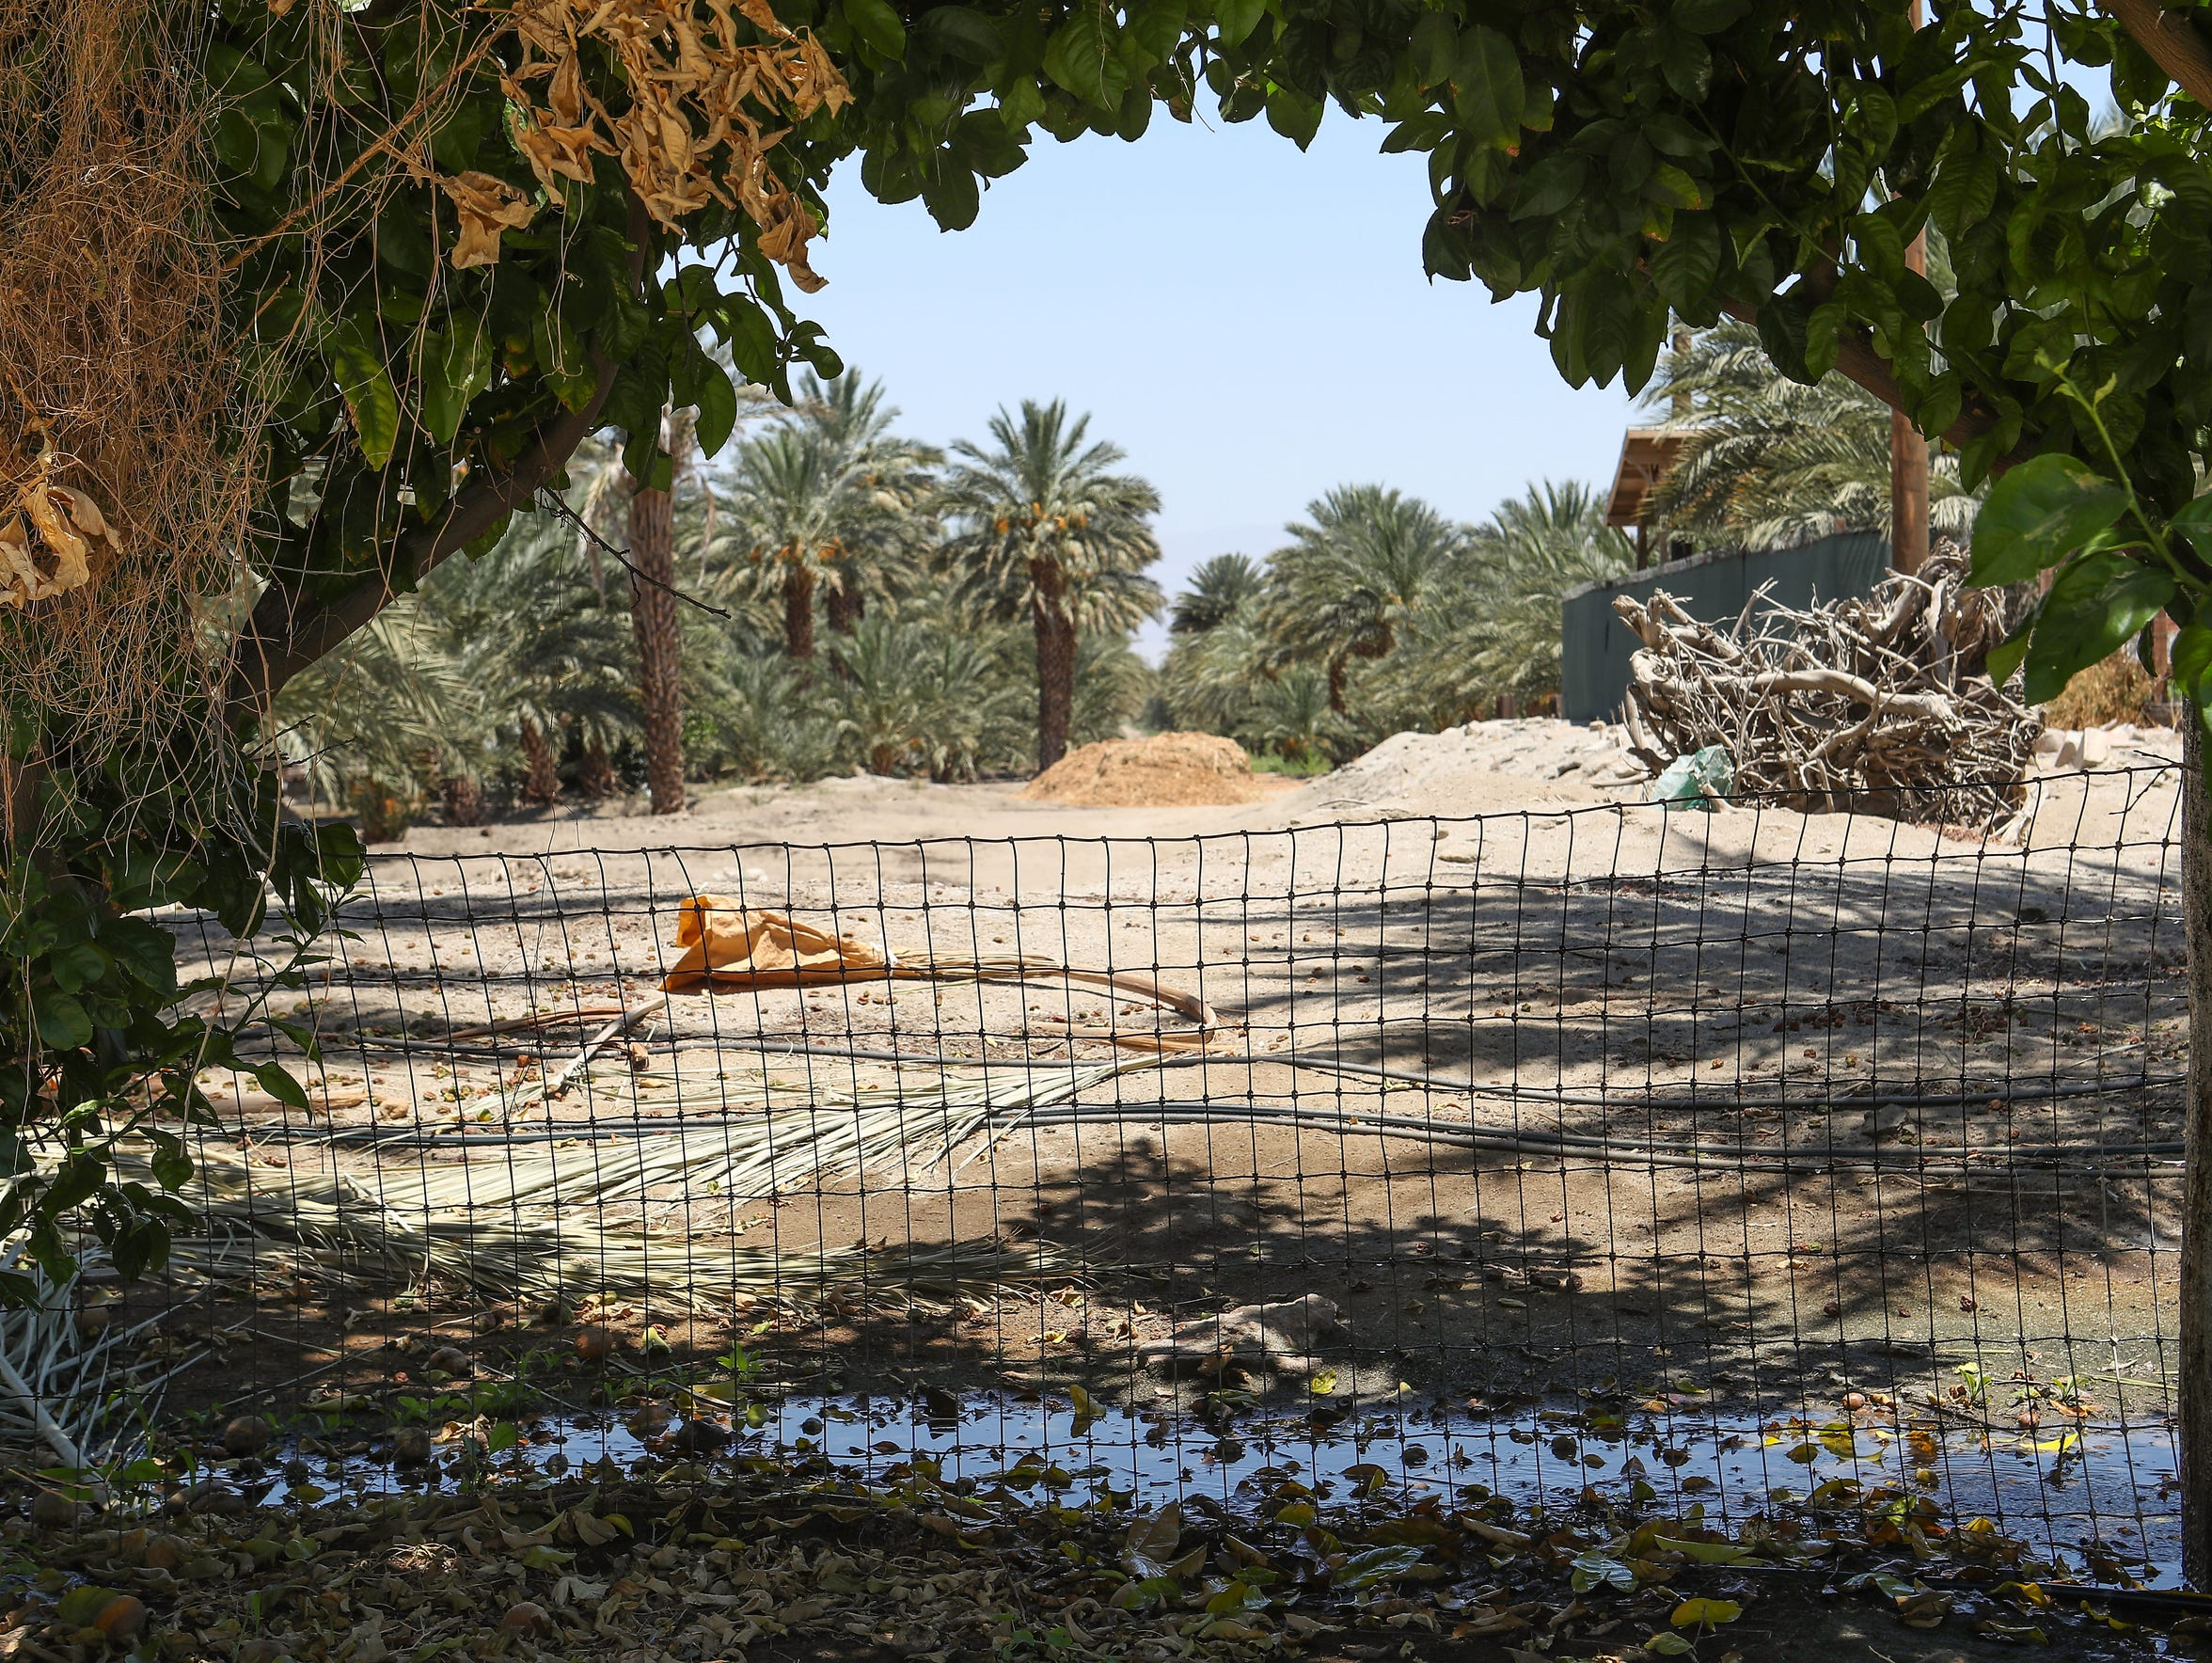 Farmers have planted more date trees in the Coachella Valley during the past decade. Dates usually require more water than field crops such as carrots or peppers.